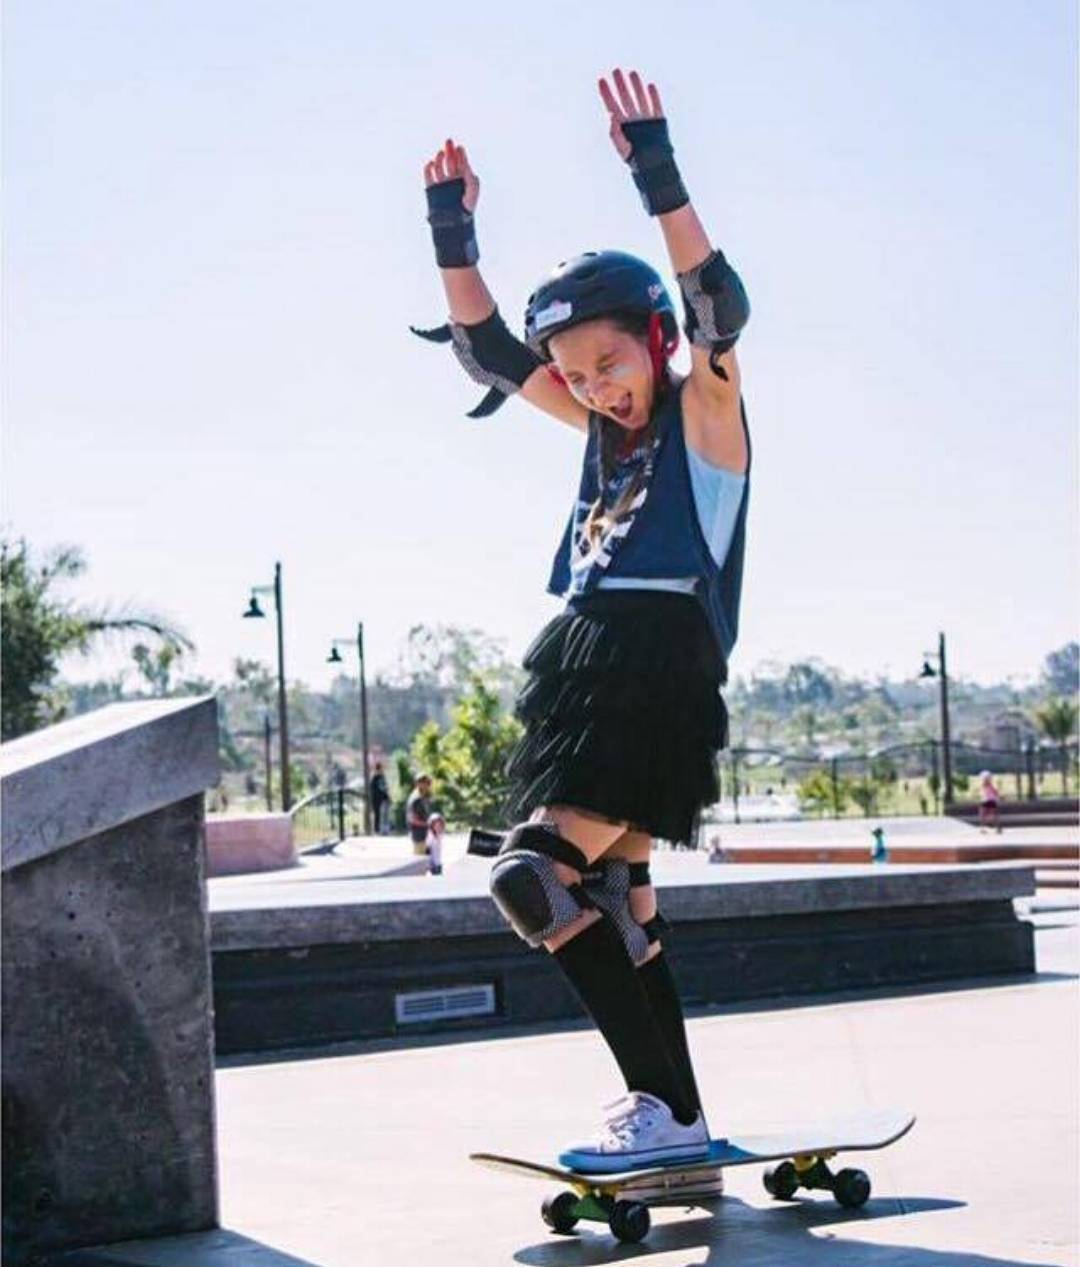 This Saturday, SEPTEMBER 10TH, 9-11am at the Encinitas Community Park! JOIN @skaterising!  This program provides opportunities for young girls to be involved in community service projects, followed by a free skate clinic and opportunity to skate with...